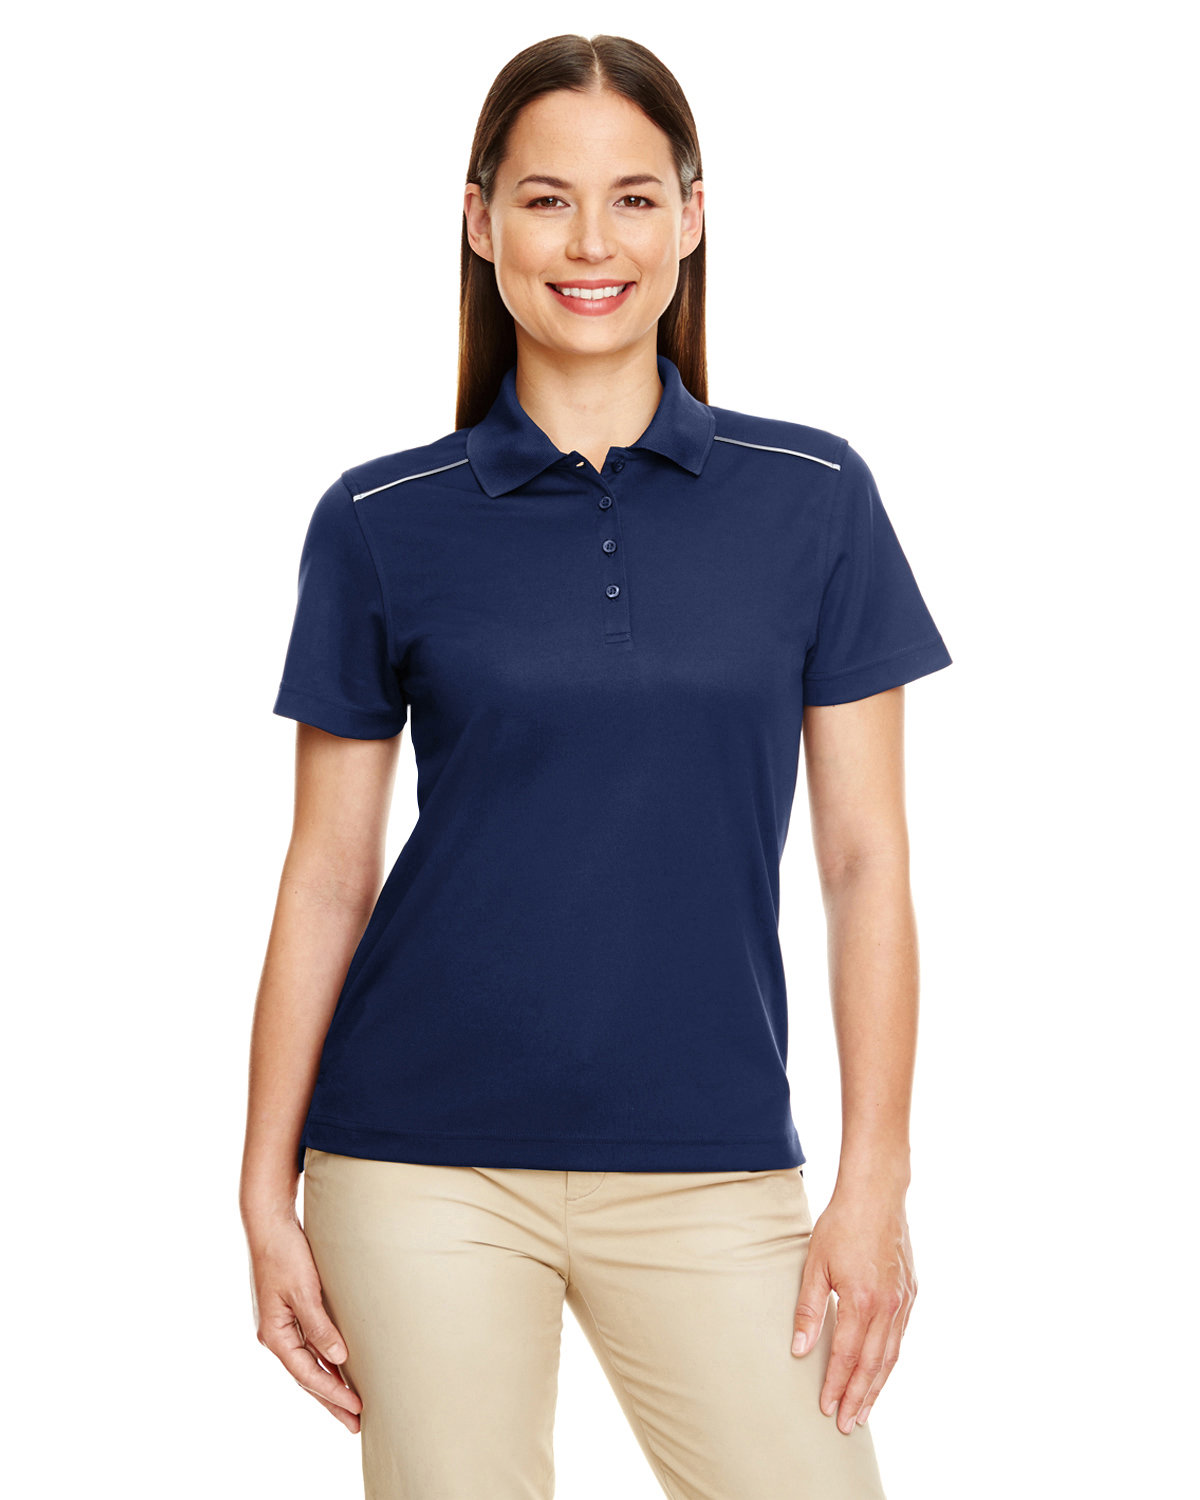 Core 365 Ladies' Radiant Performance Piqué Polo with Reflective Piping CLASSIC NAVY